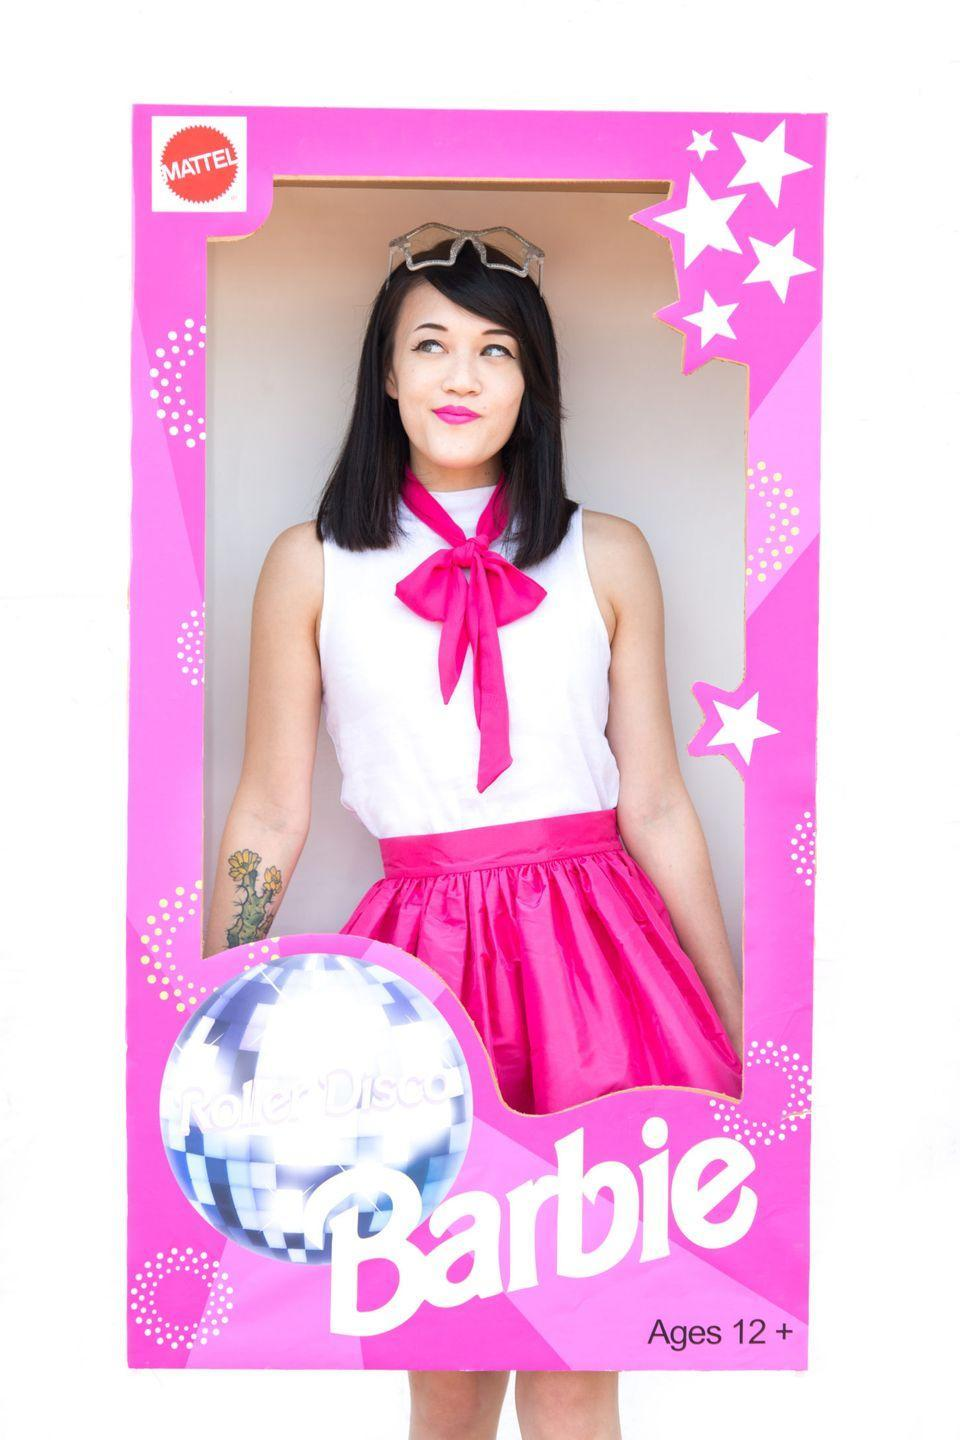 """<p>Few things go together better than the '90s and Barbie. And the fact that this costume is all about roller skating adds an even more nostalgic touch. </p><p><em><a href=""""http://www.awwsam.com/2016/09/diy-roller-disco-barbie-halloween.html"""" rel=""""nofollow noopener"""" target=""""_blank"""" data-ylk=""""slk:Get the tutorial at Aww Sam >>"""" class=""""link rapid-noclick-resp"""">Get the tutorial at Aww Sam >></a></em></p>"""